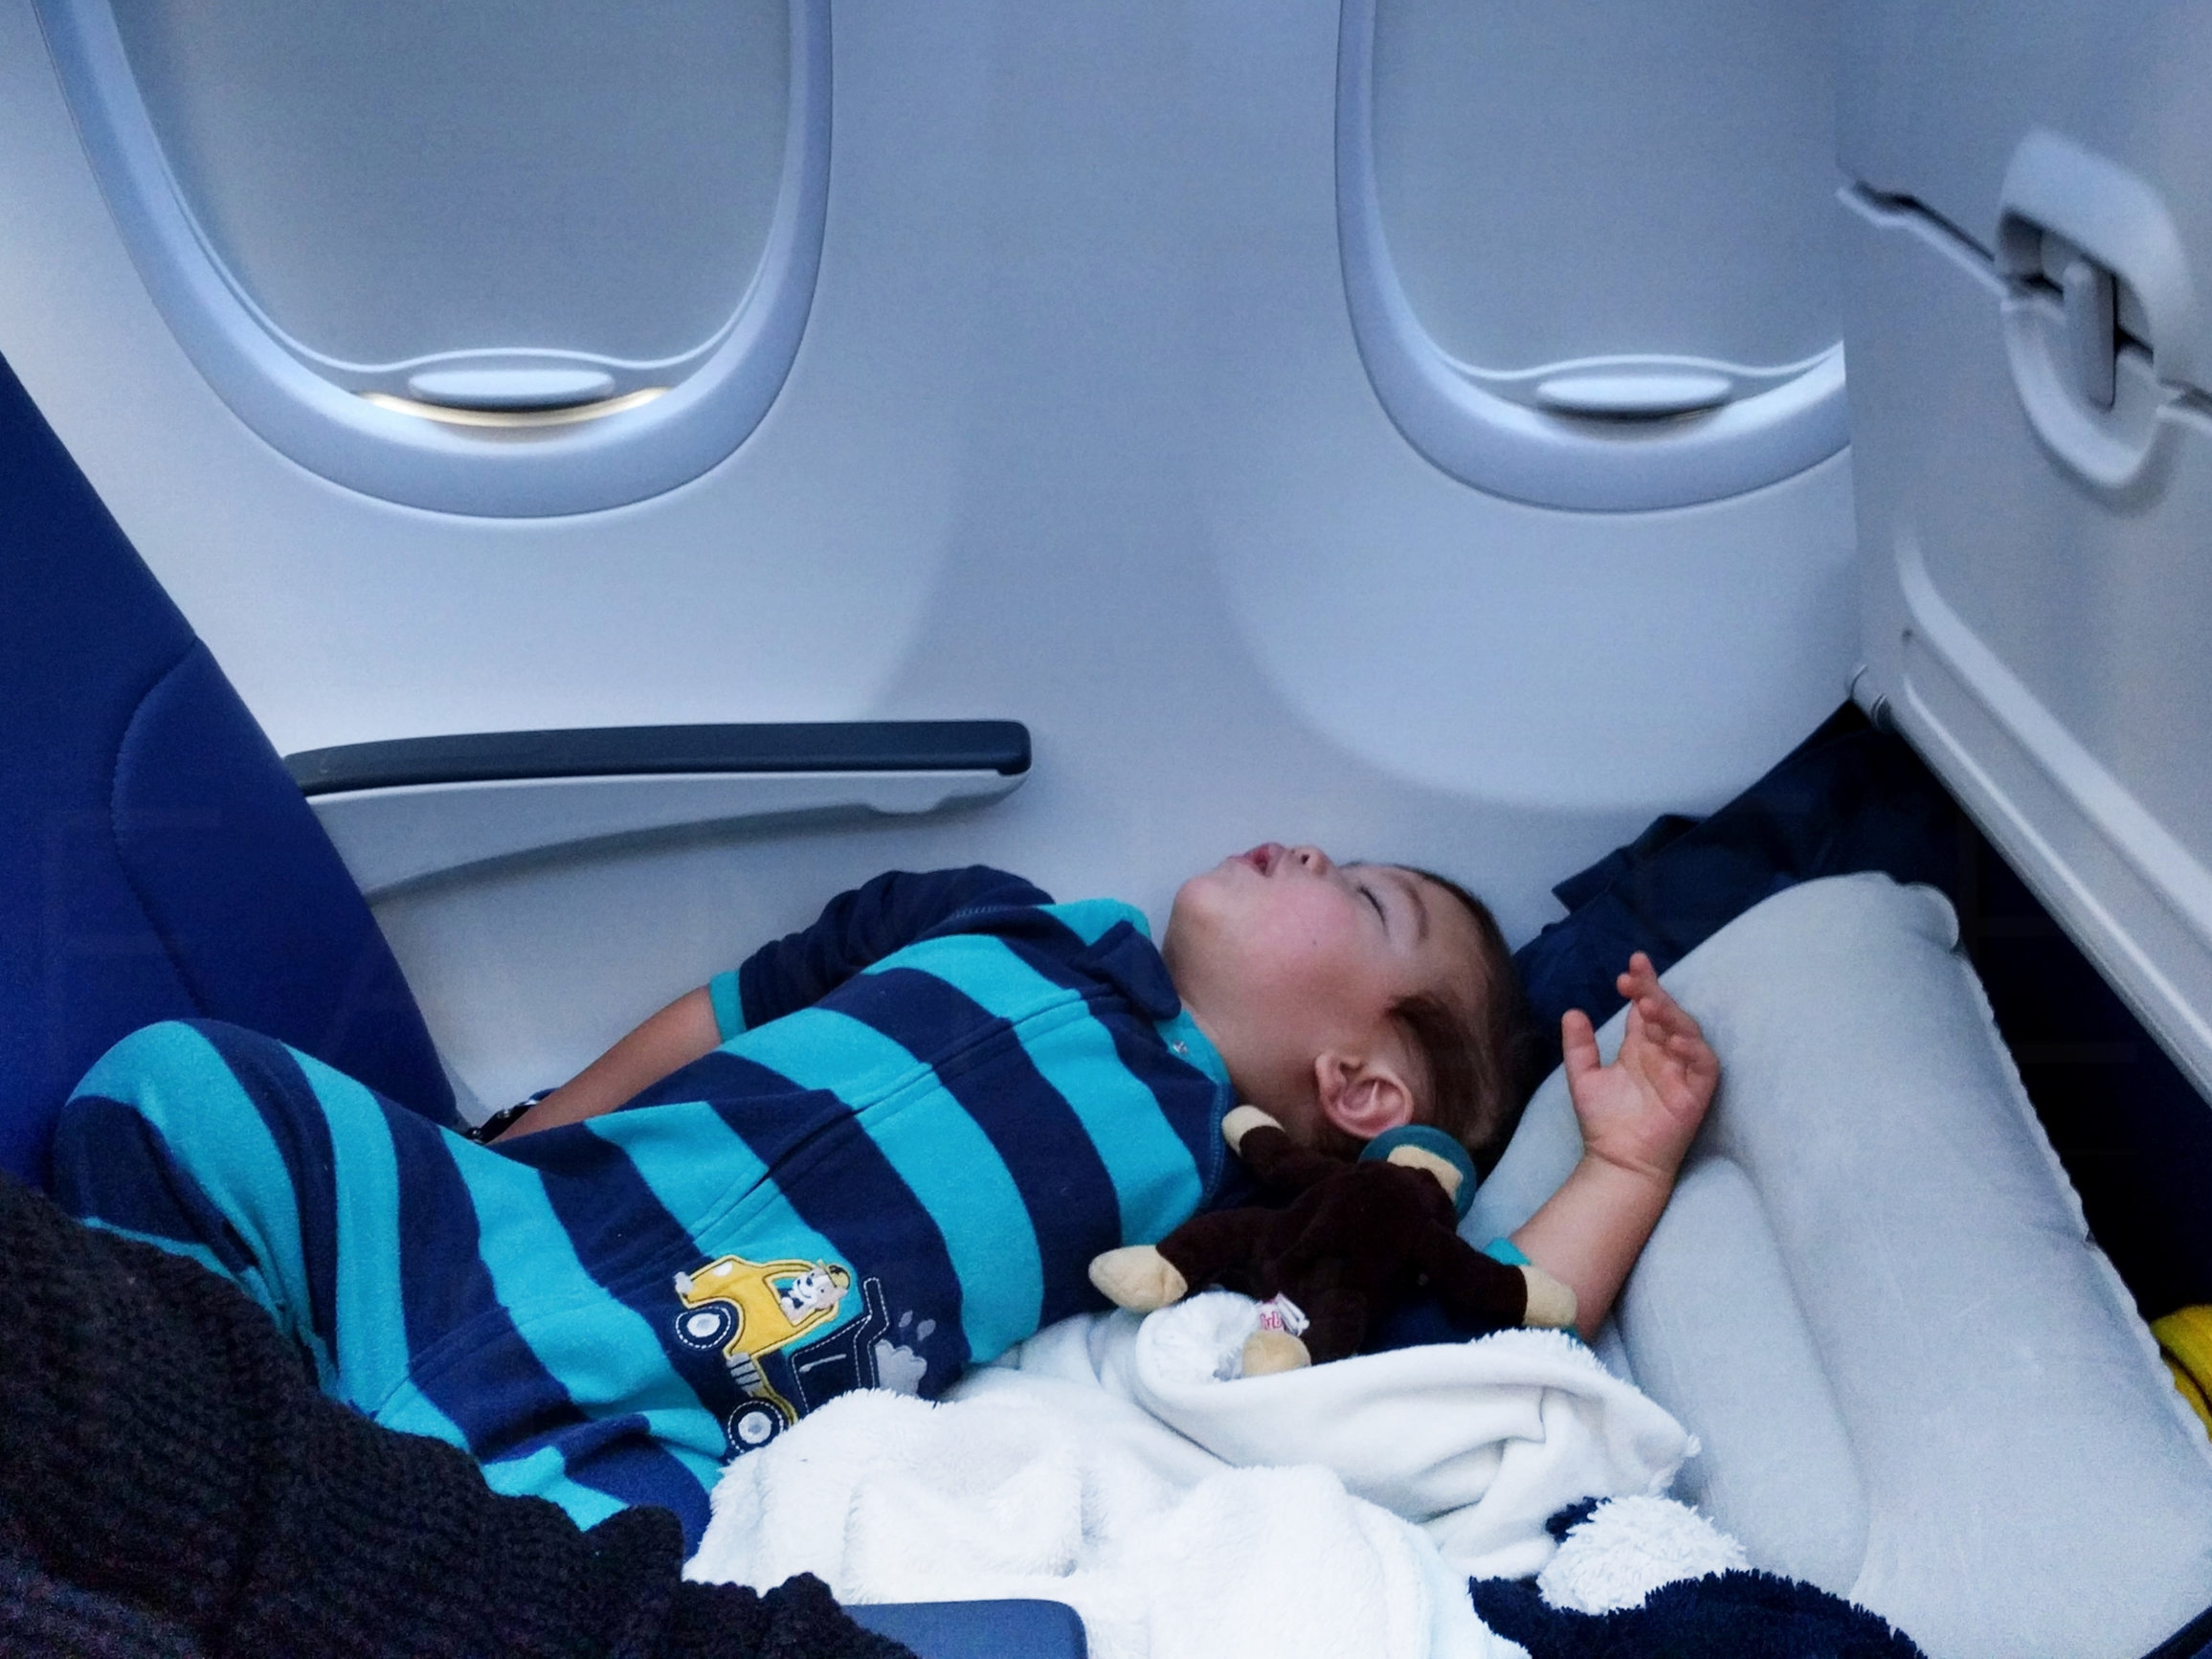 Elden (22 months old) using Fly LegsUp to sleep on the plane